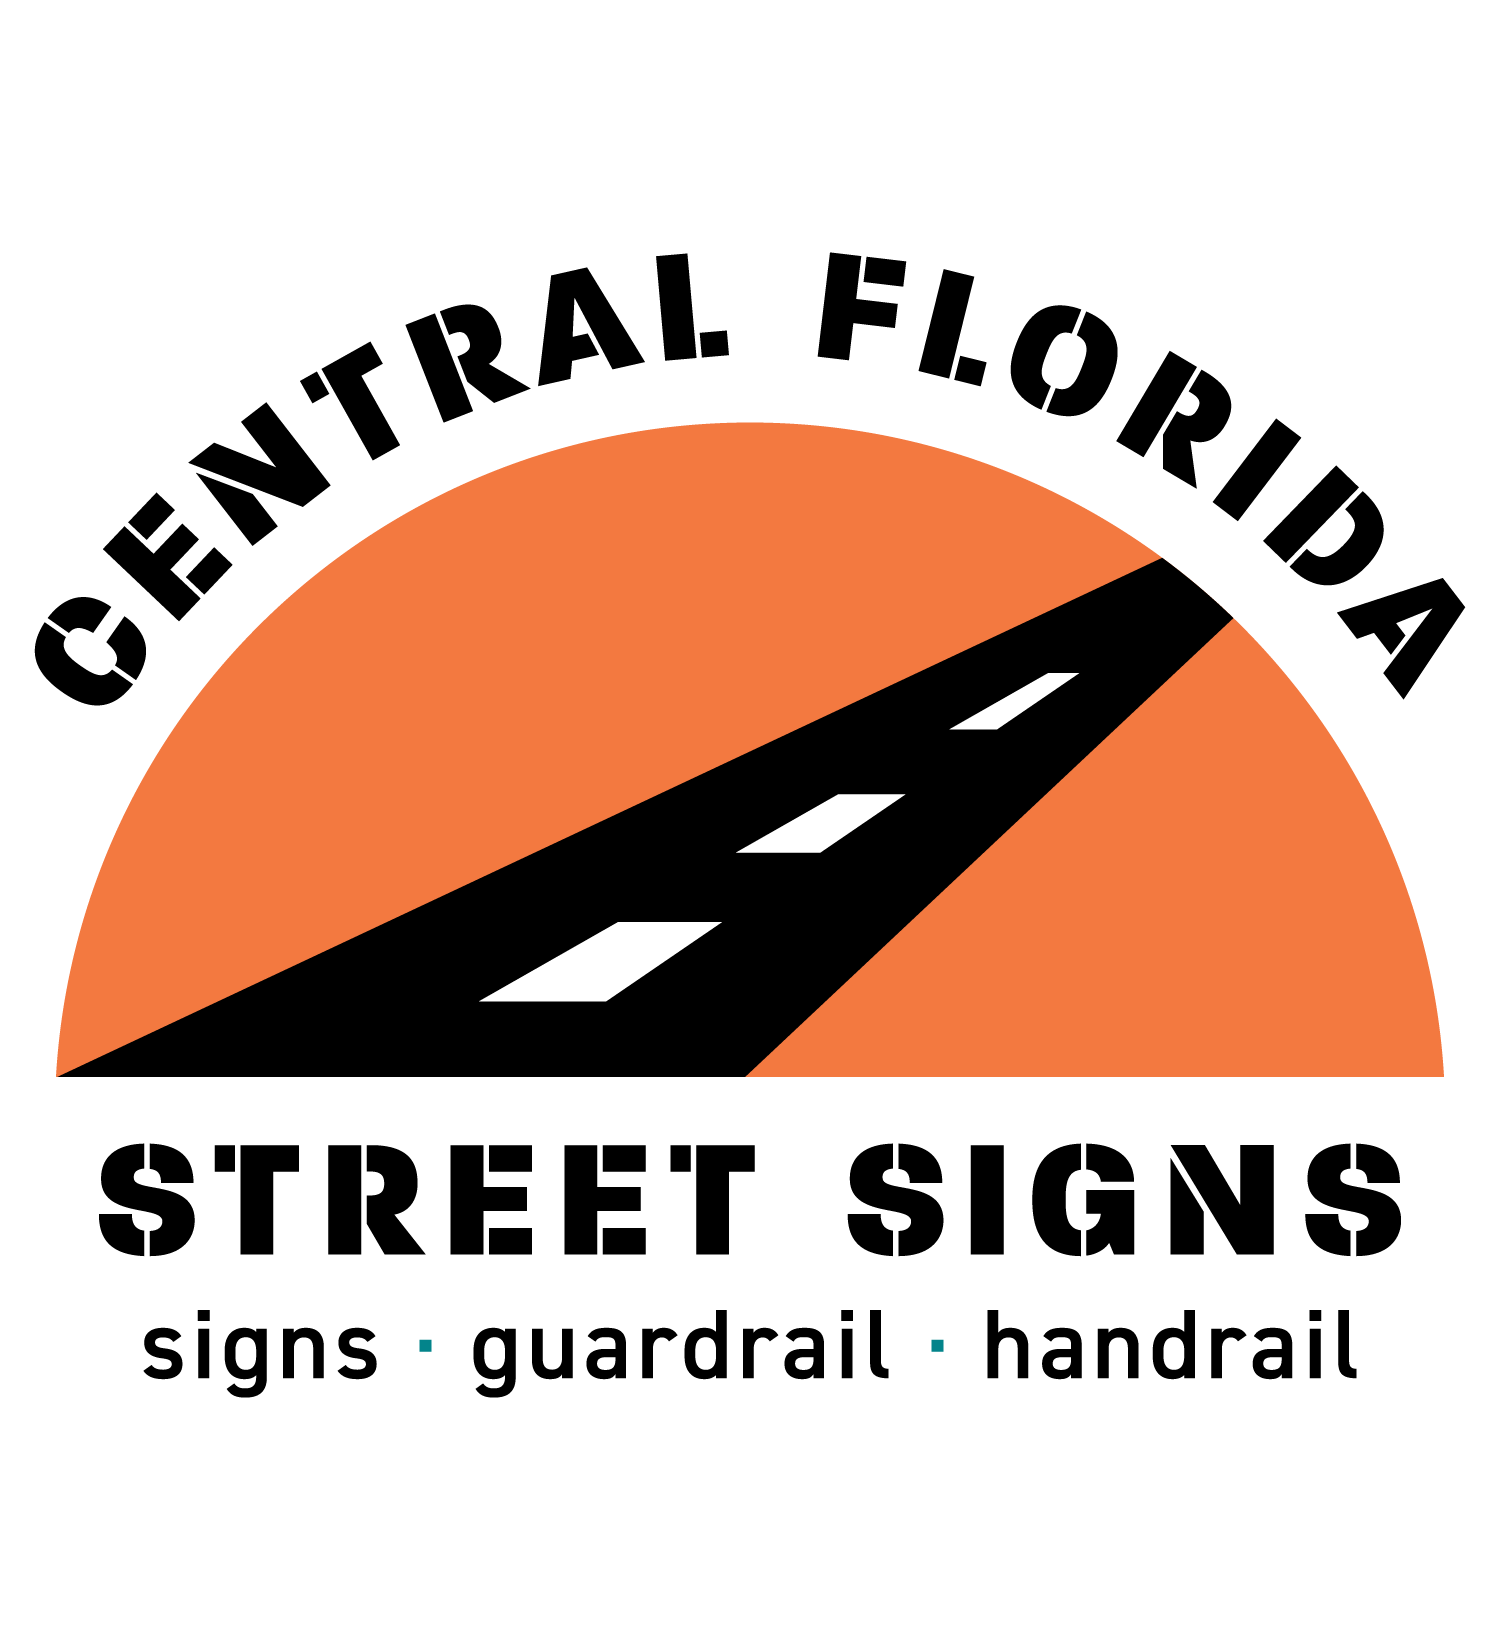 Central Florida Street Signs